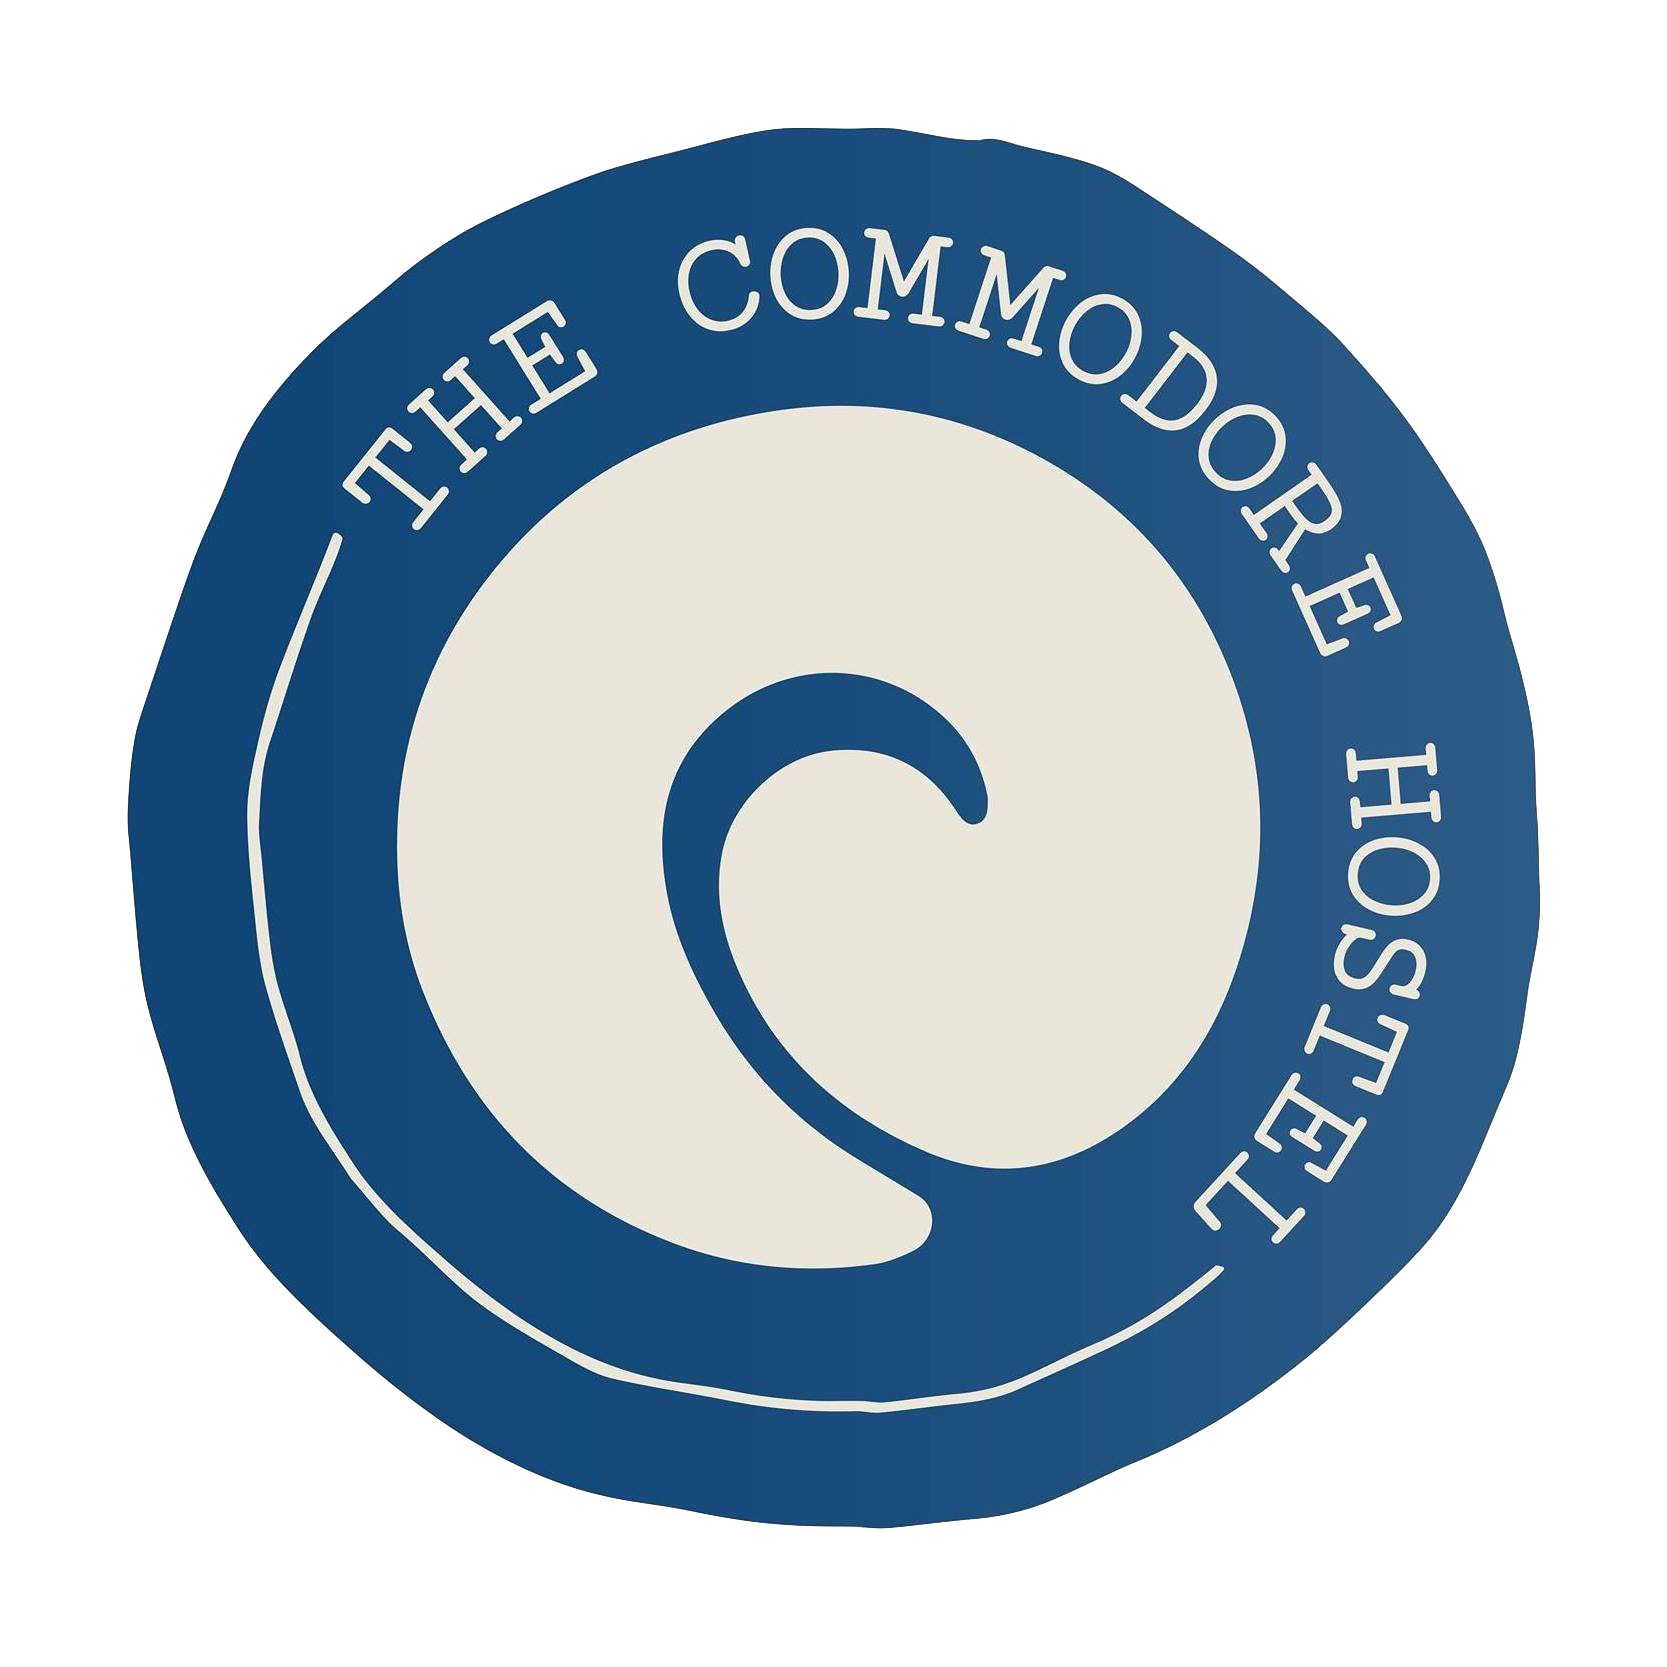 The Commodore Hostel